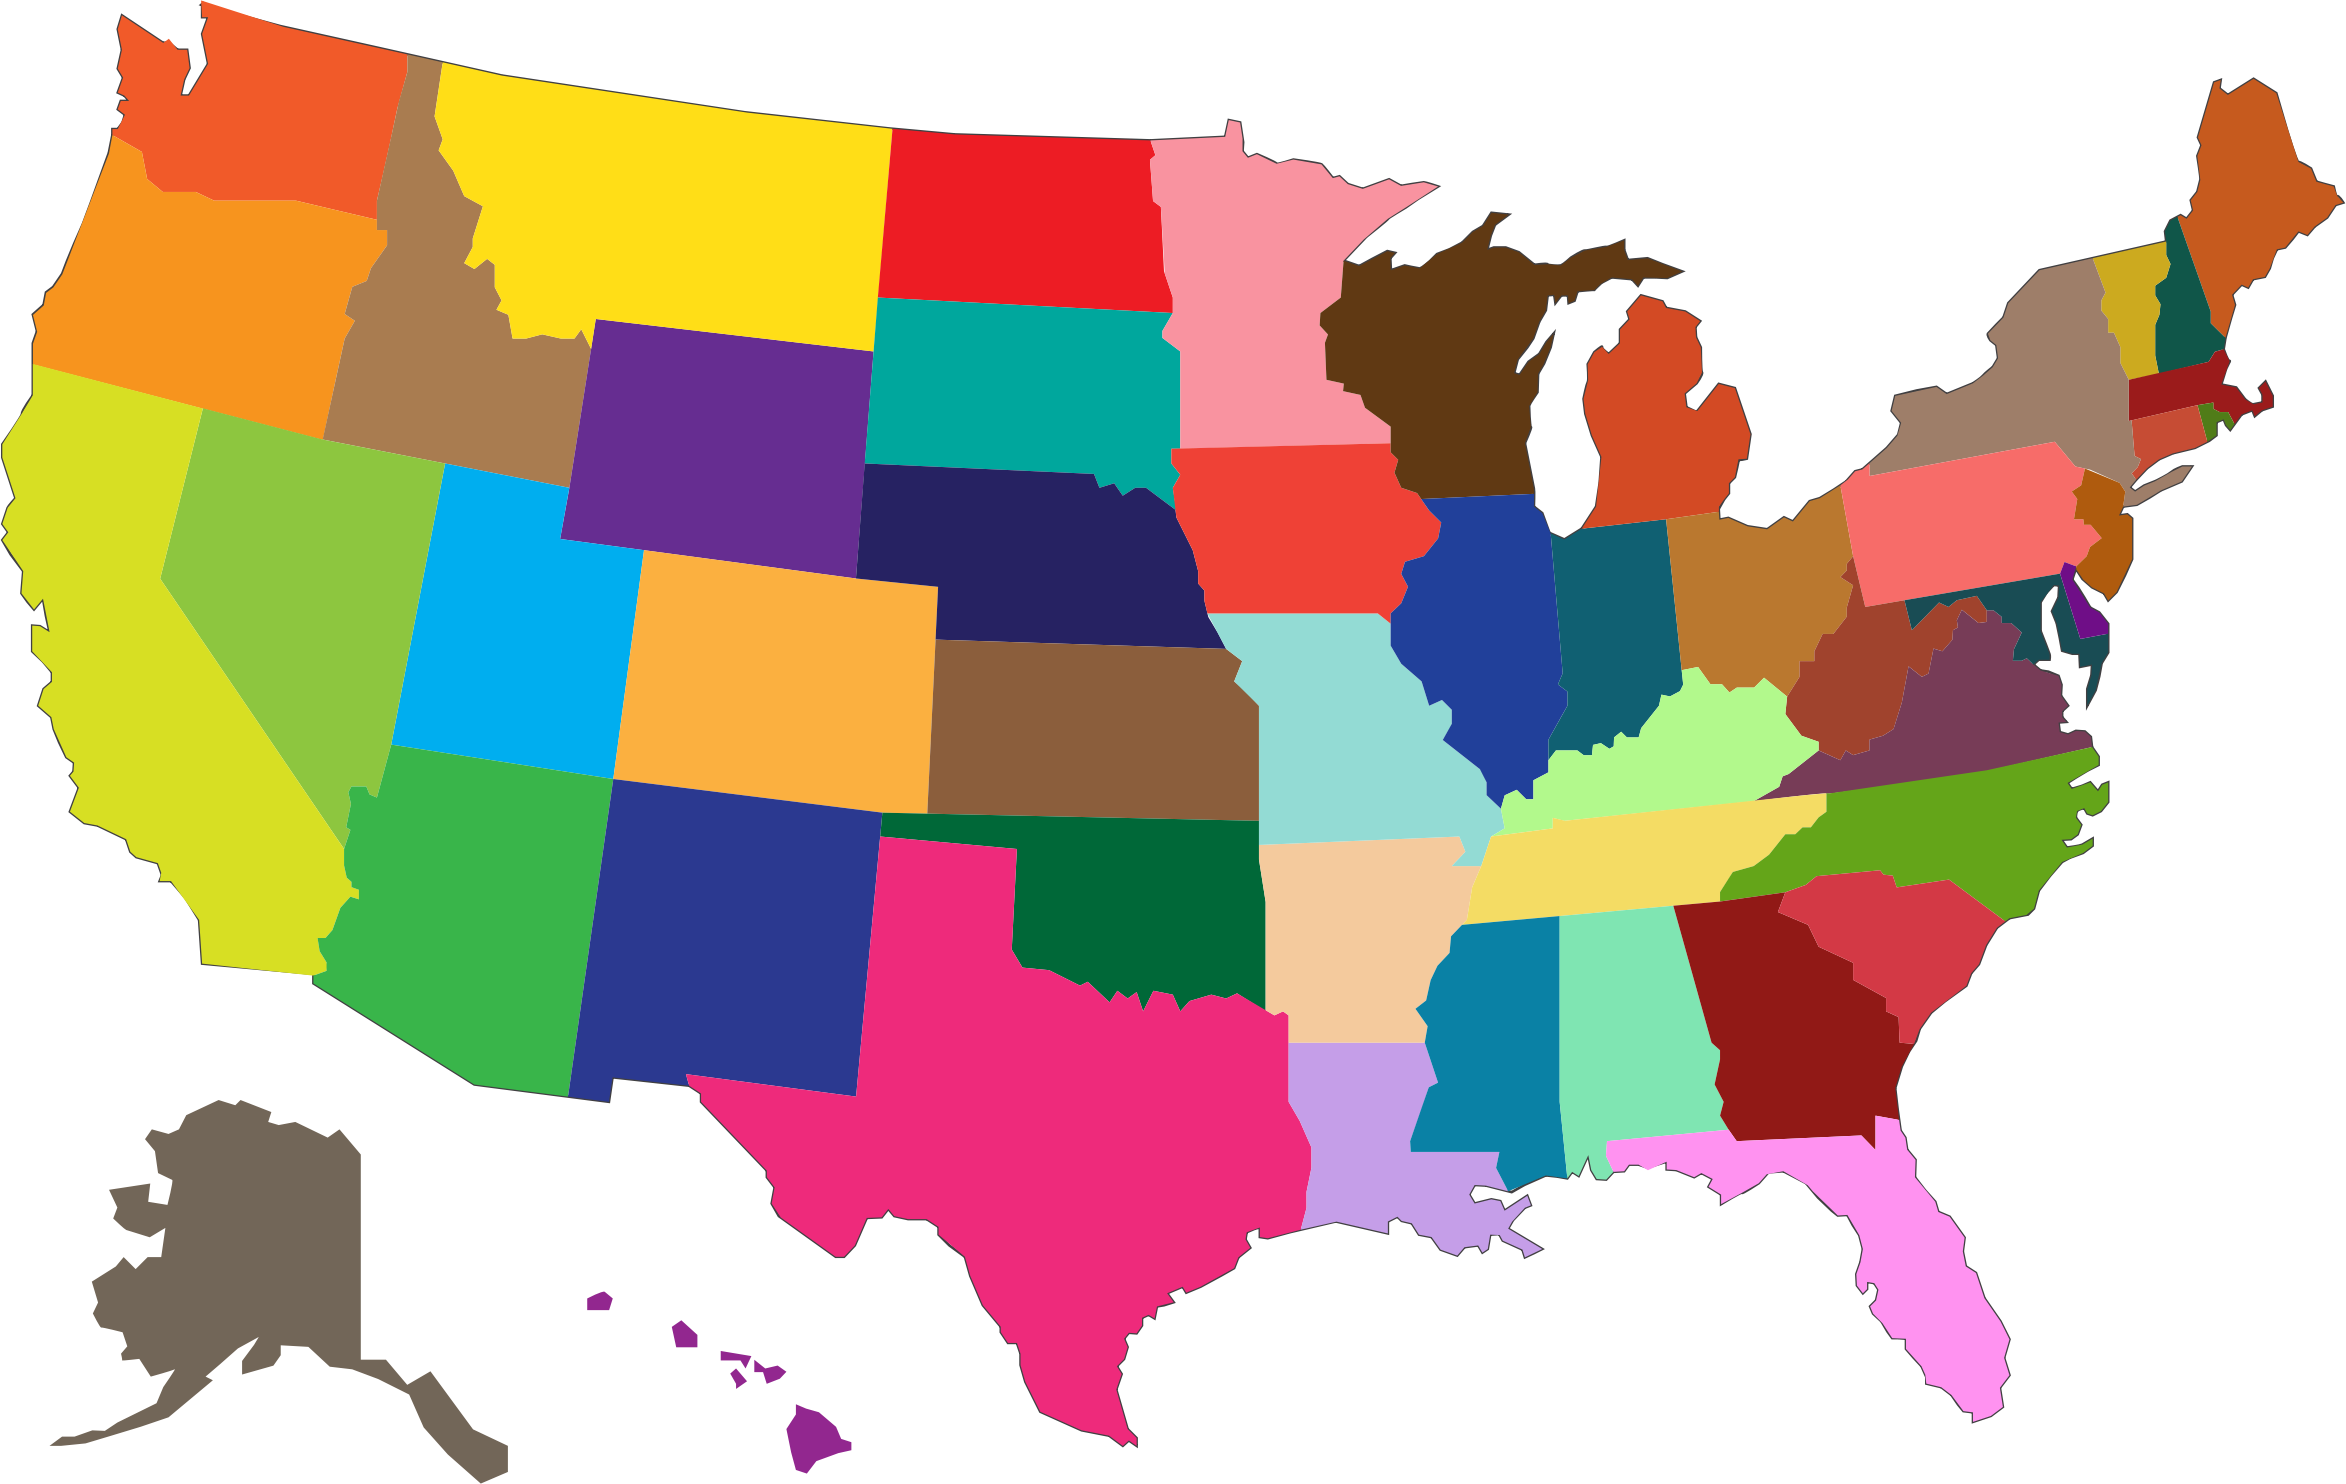 Inited States Map.Clipart Multicolored United States Map